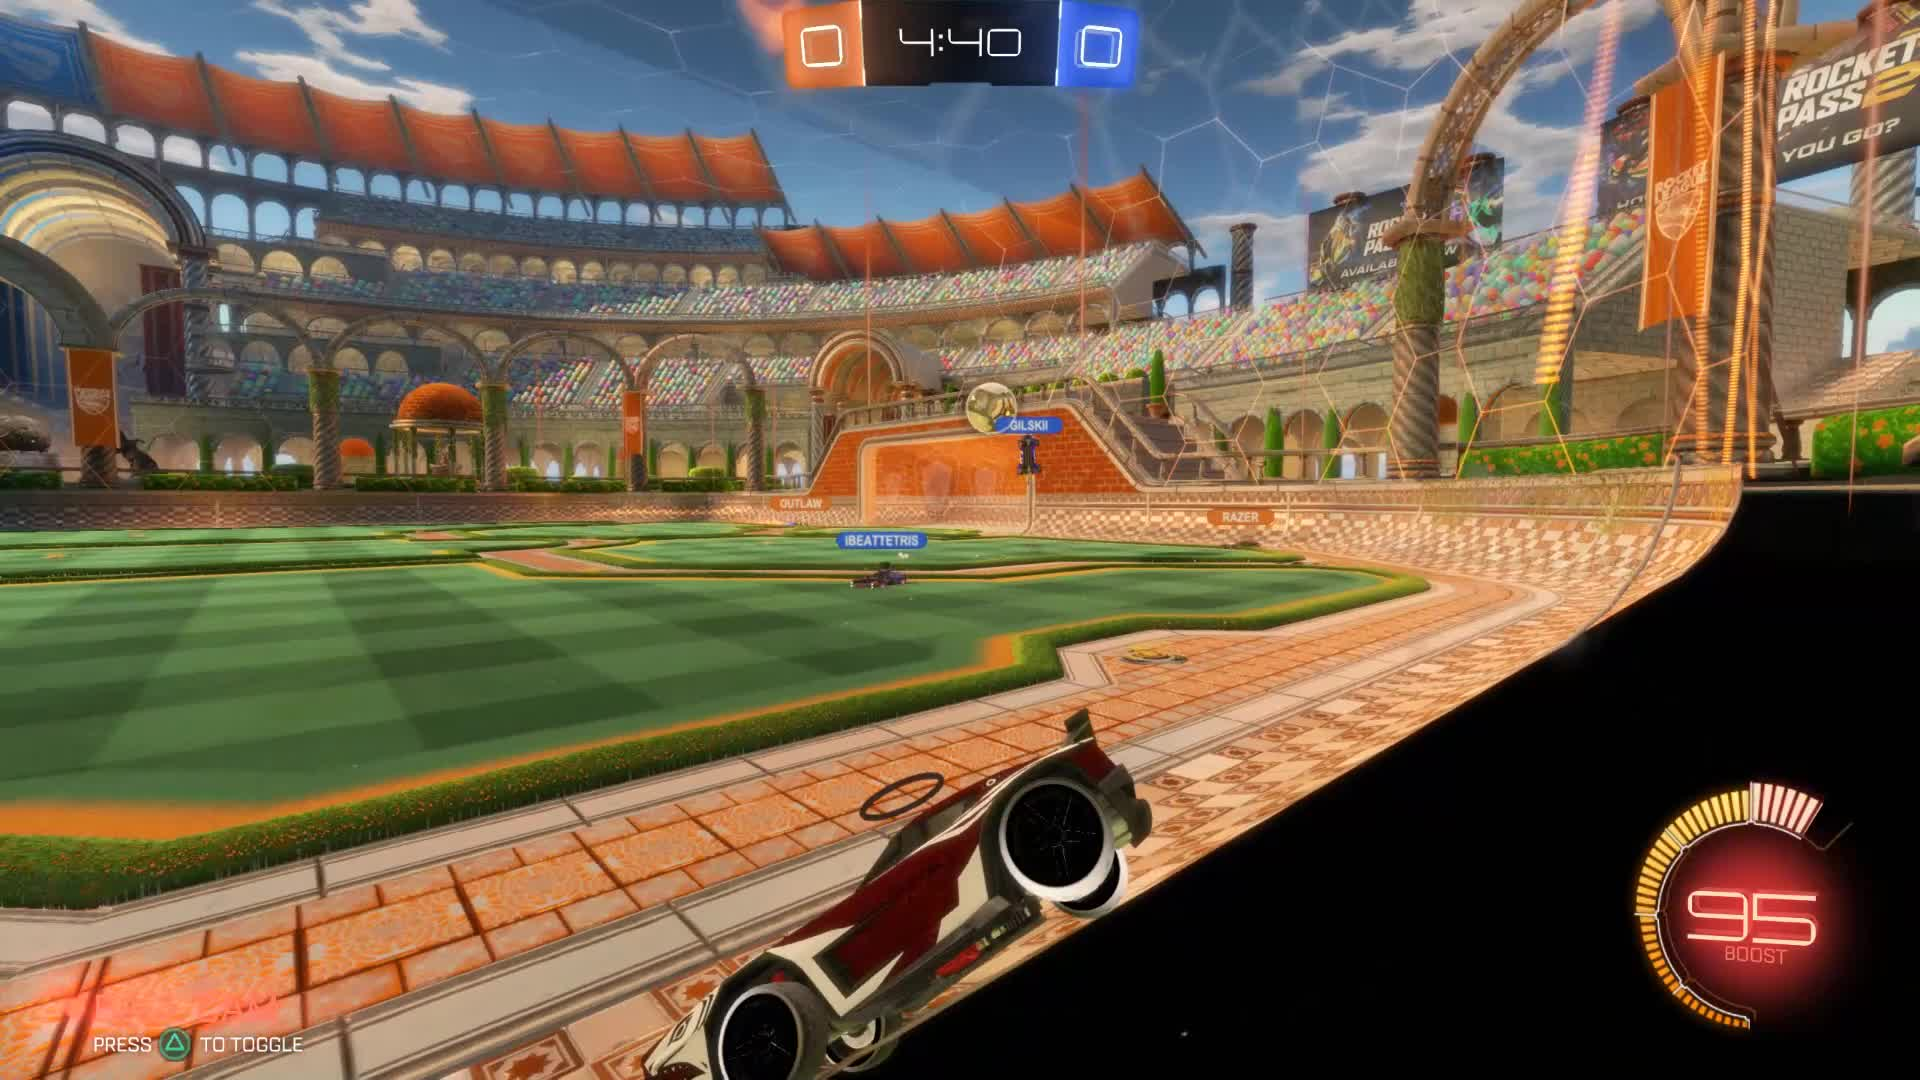 RocketLeague, turtle flick razer pass GIFs